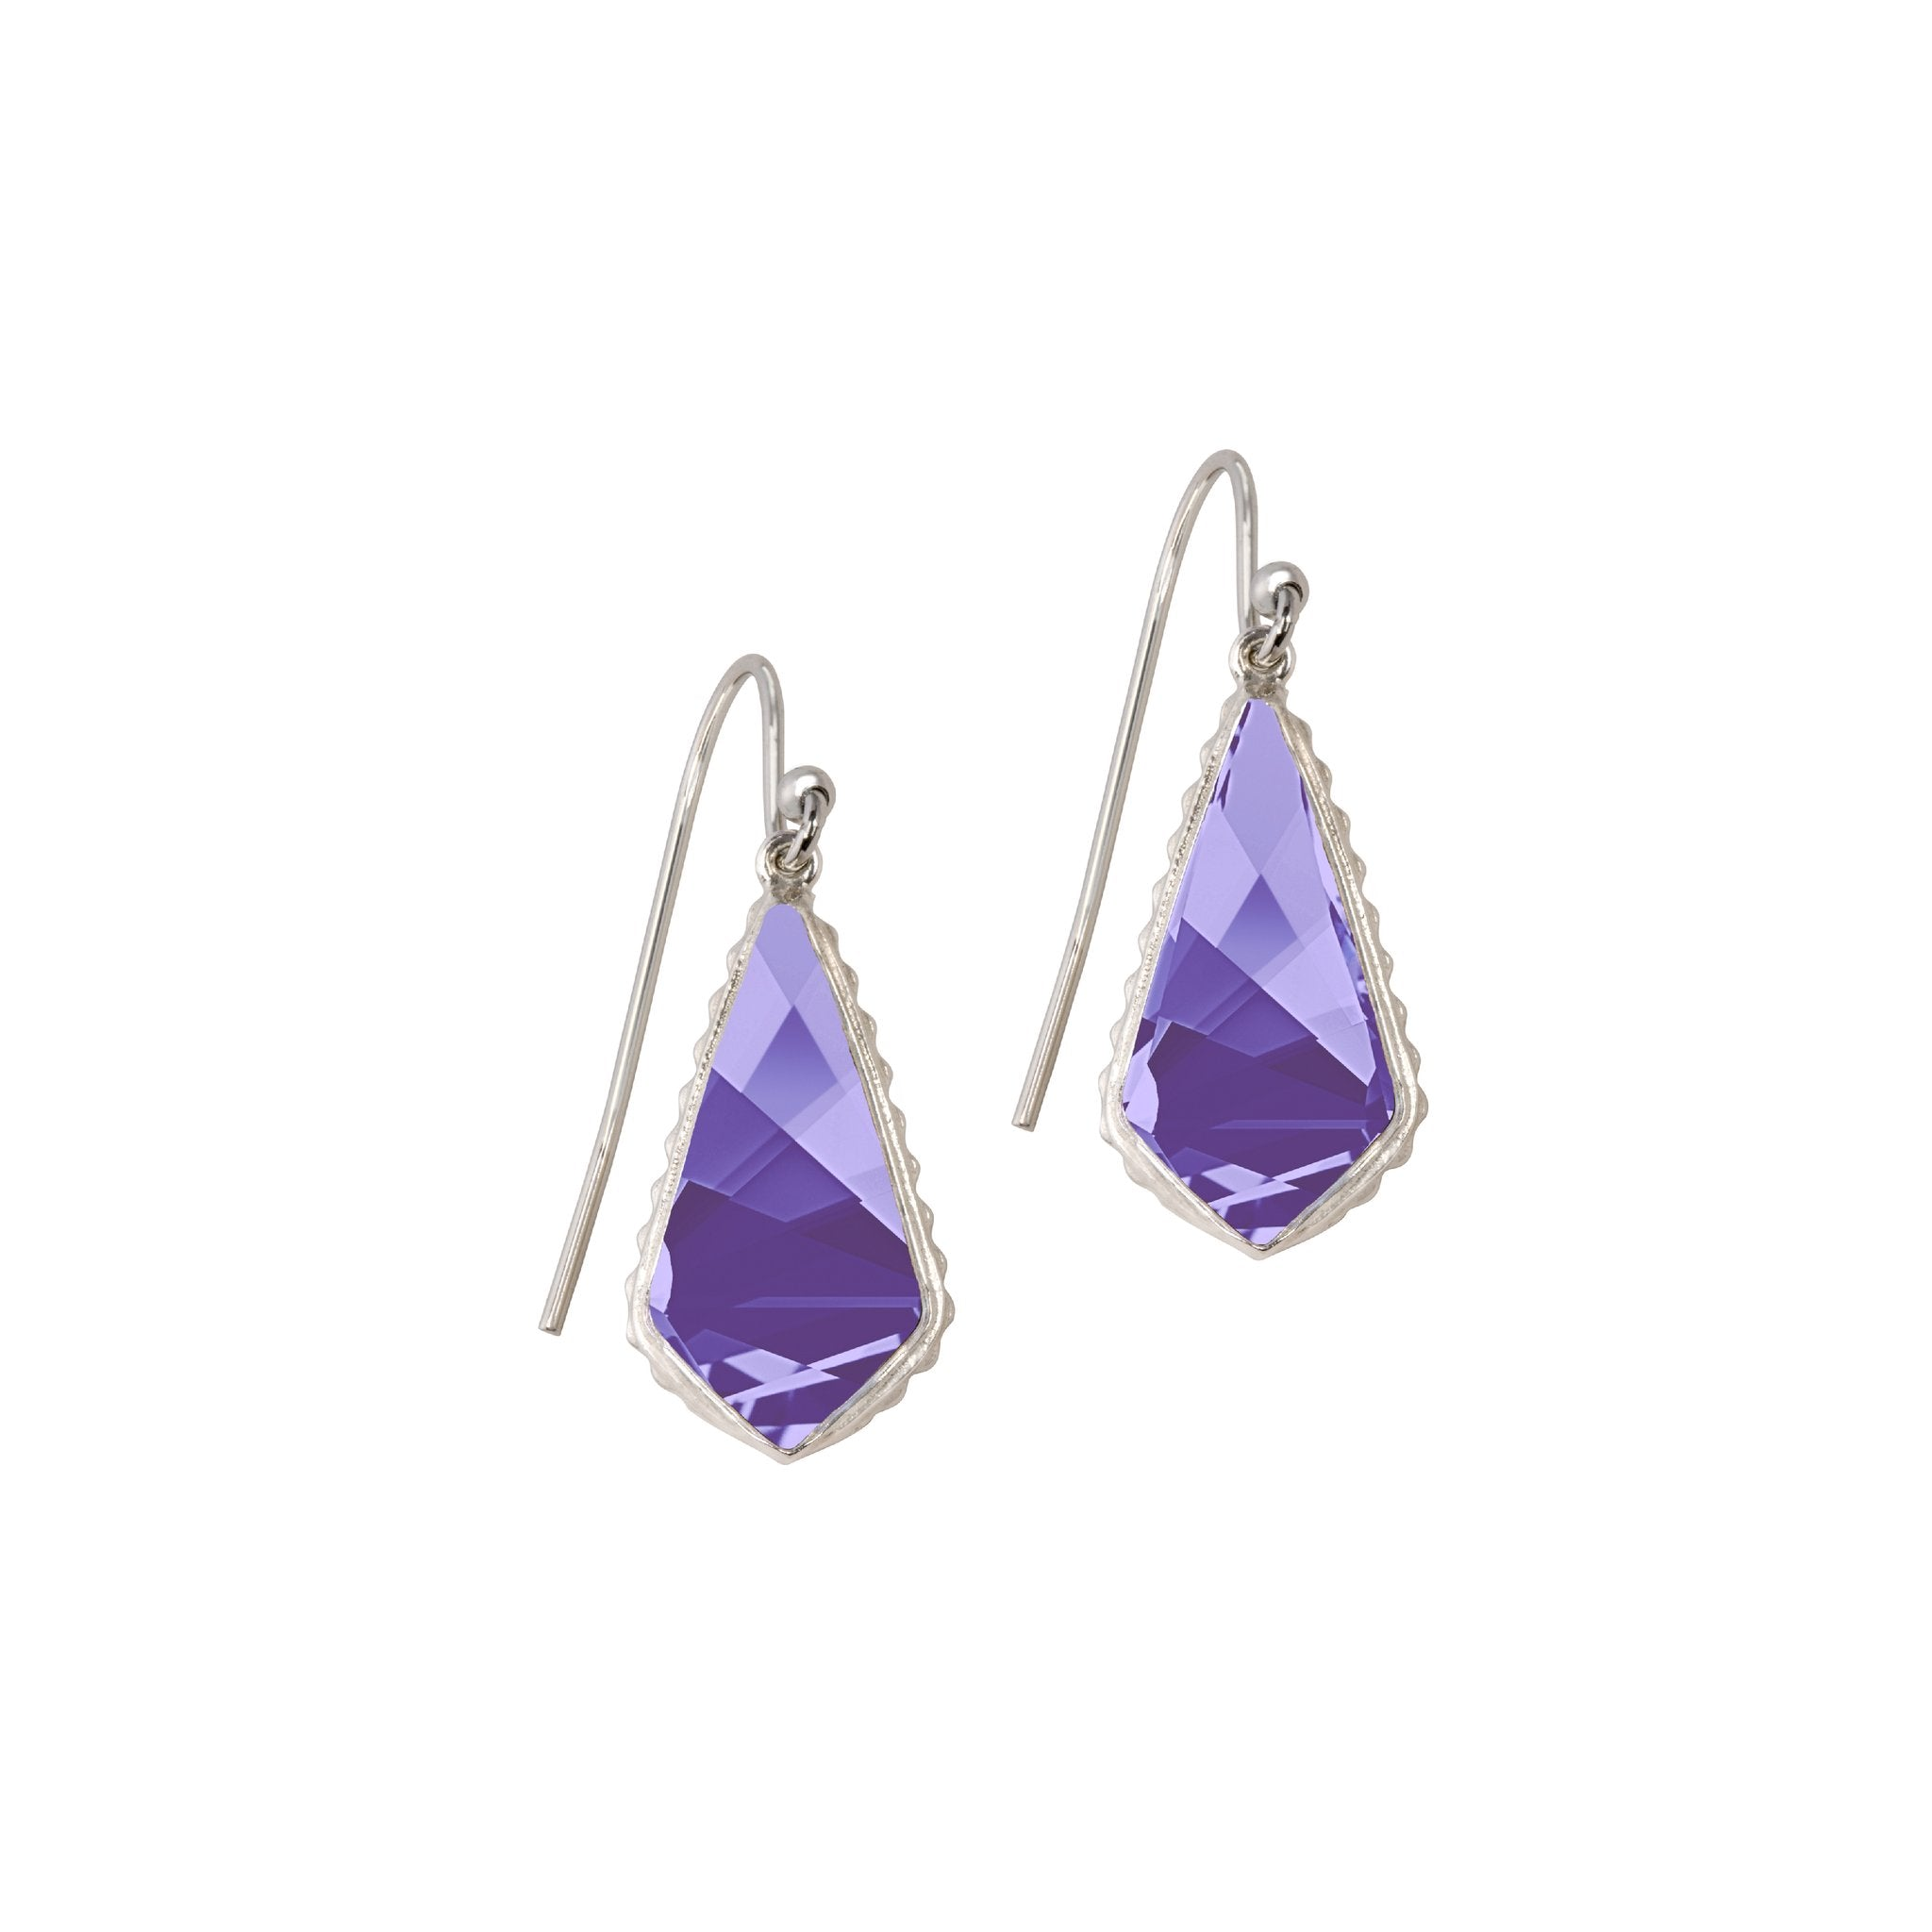 Luca + Danni Sterling Silver Sloane Earrings In Tanzanite